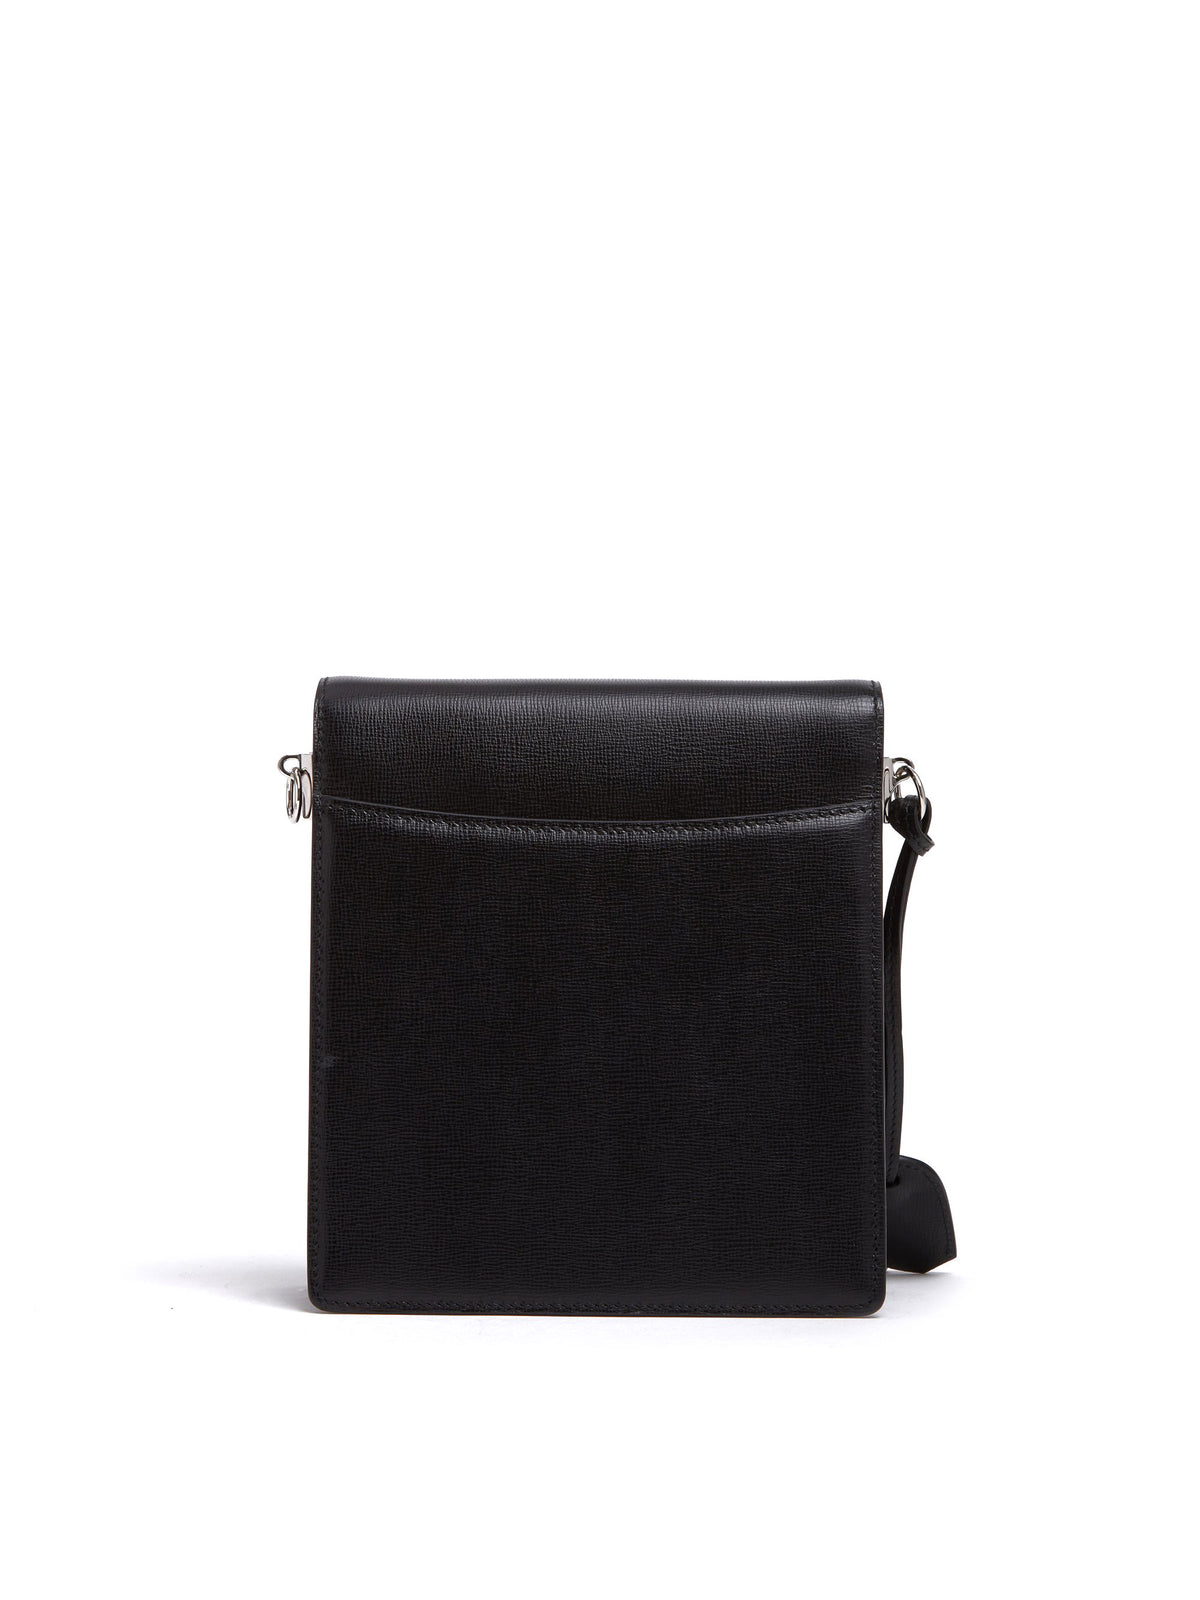 Mark Cross Patrick Leather Crossbody Bag Mini Franzi Black Back